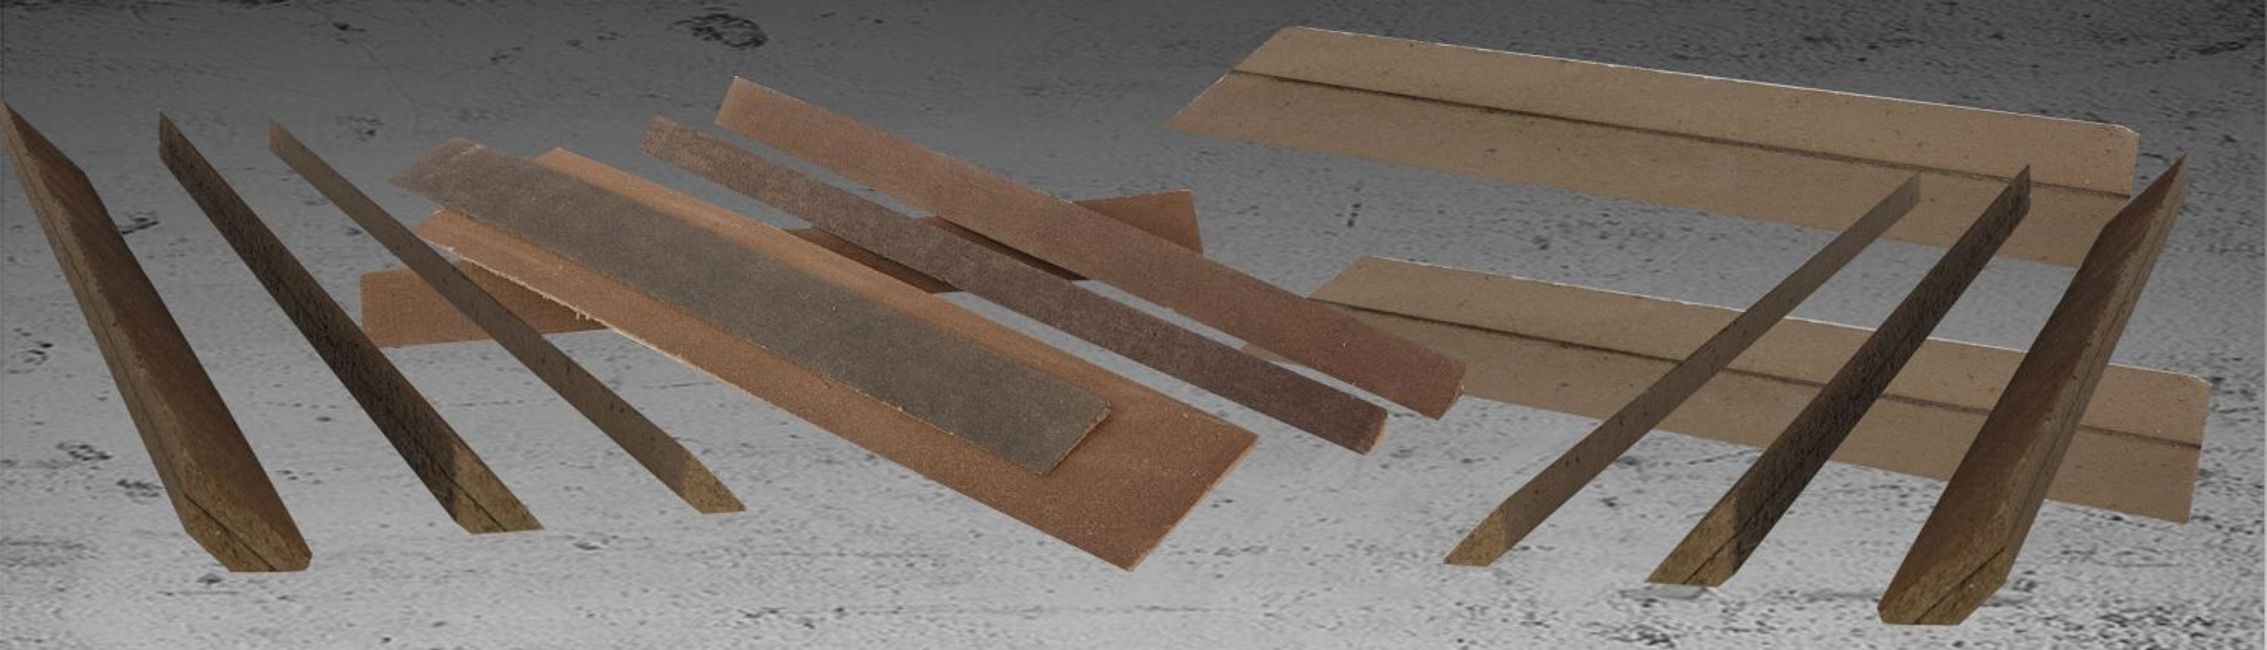 Tapered Edge, Perlite Cant, Fiberboard manufactured to specs